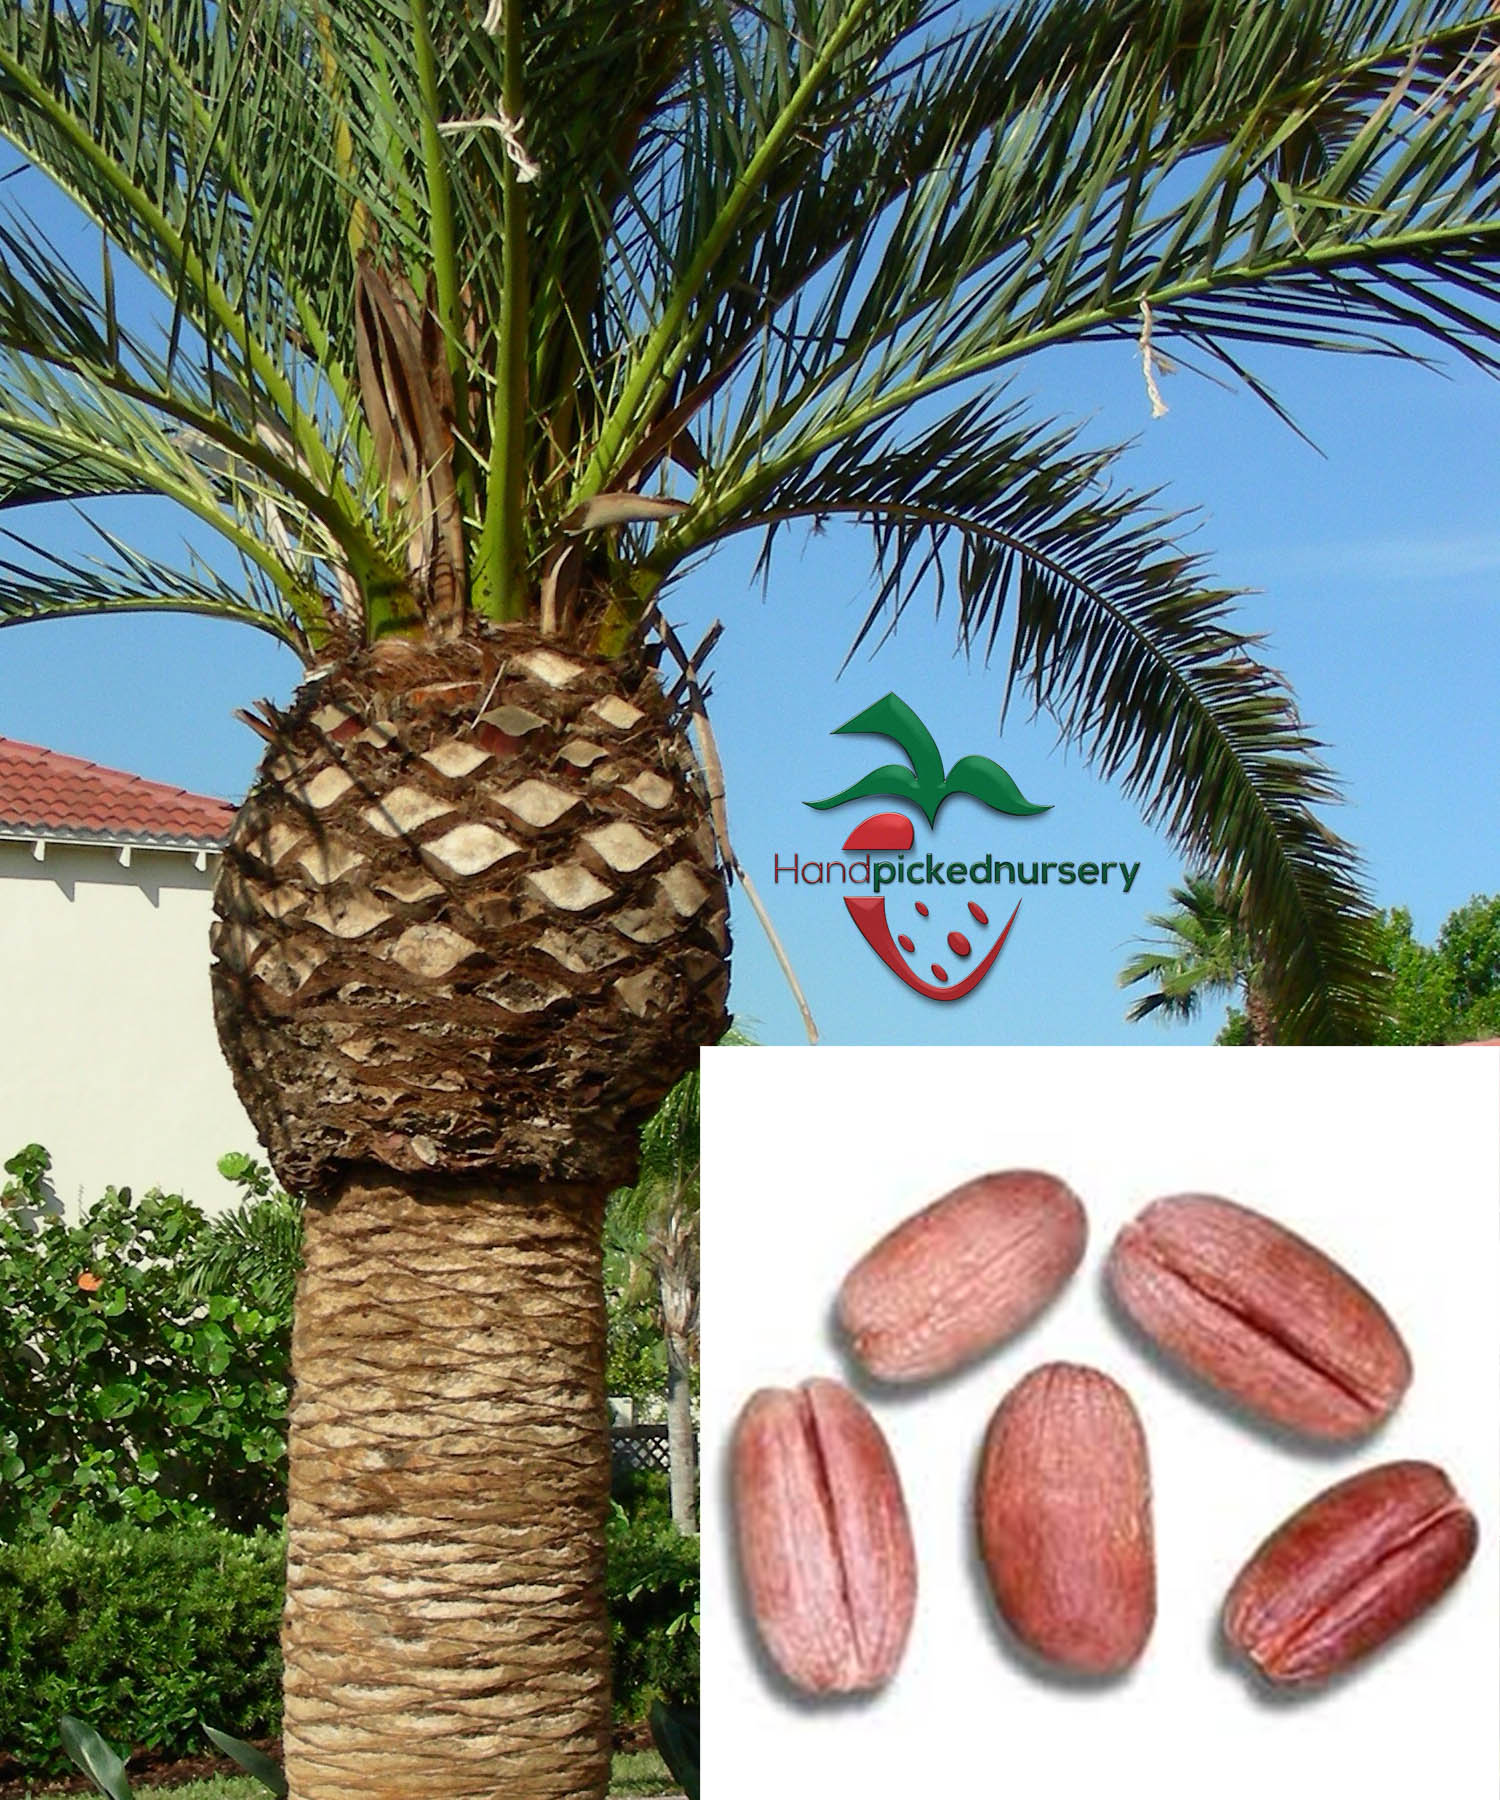 Canary island date palm growing from seed